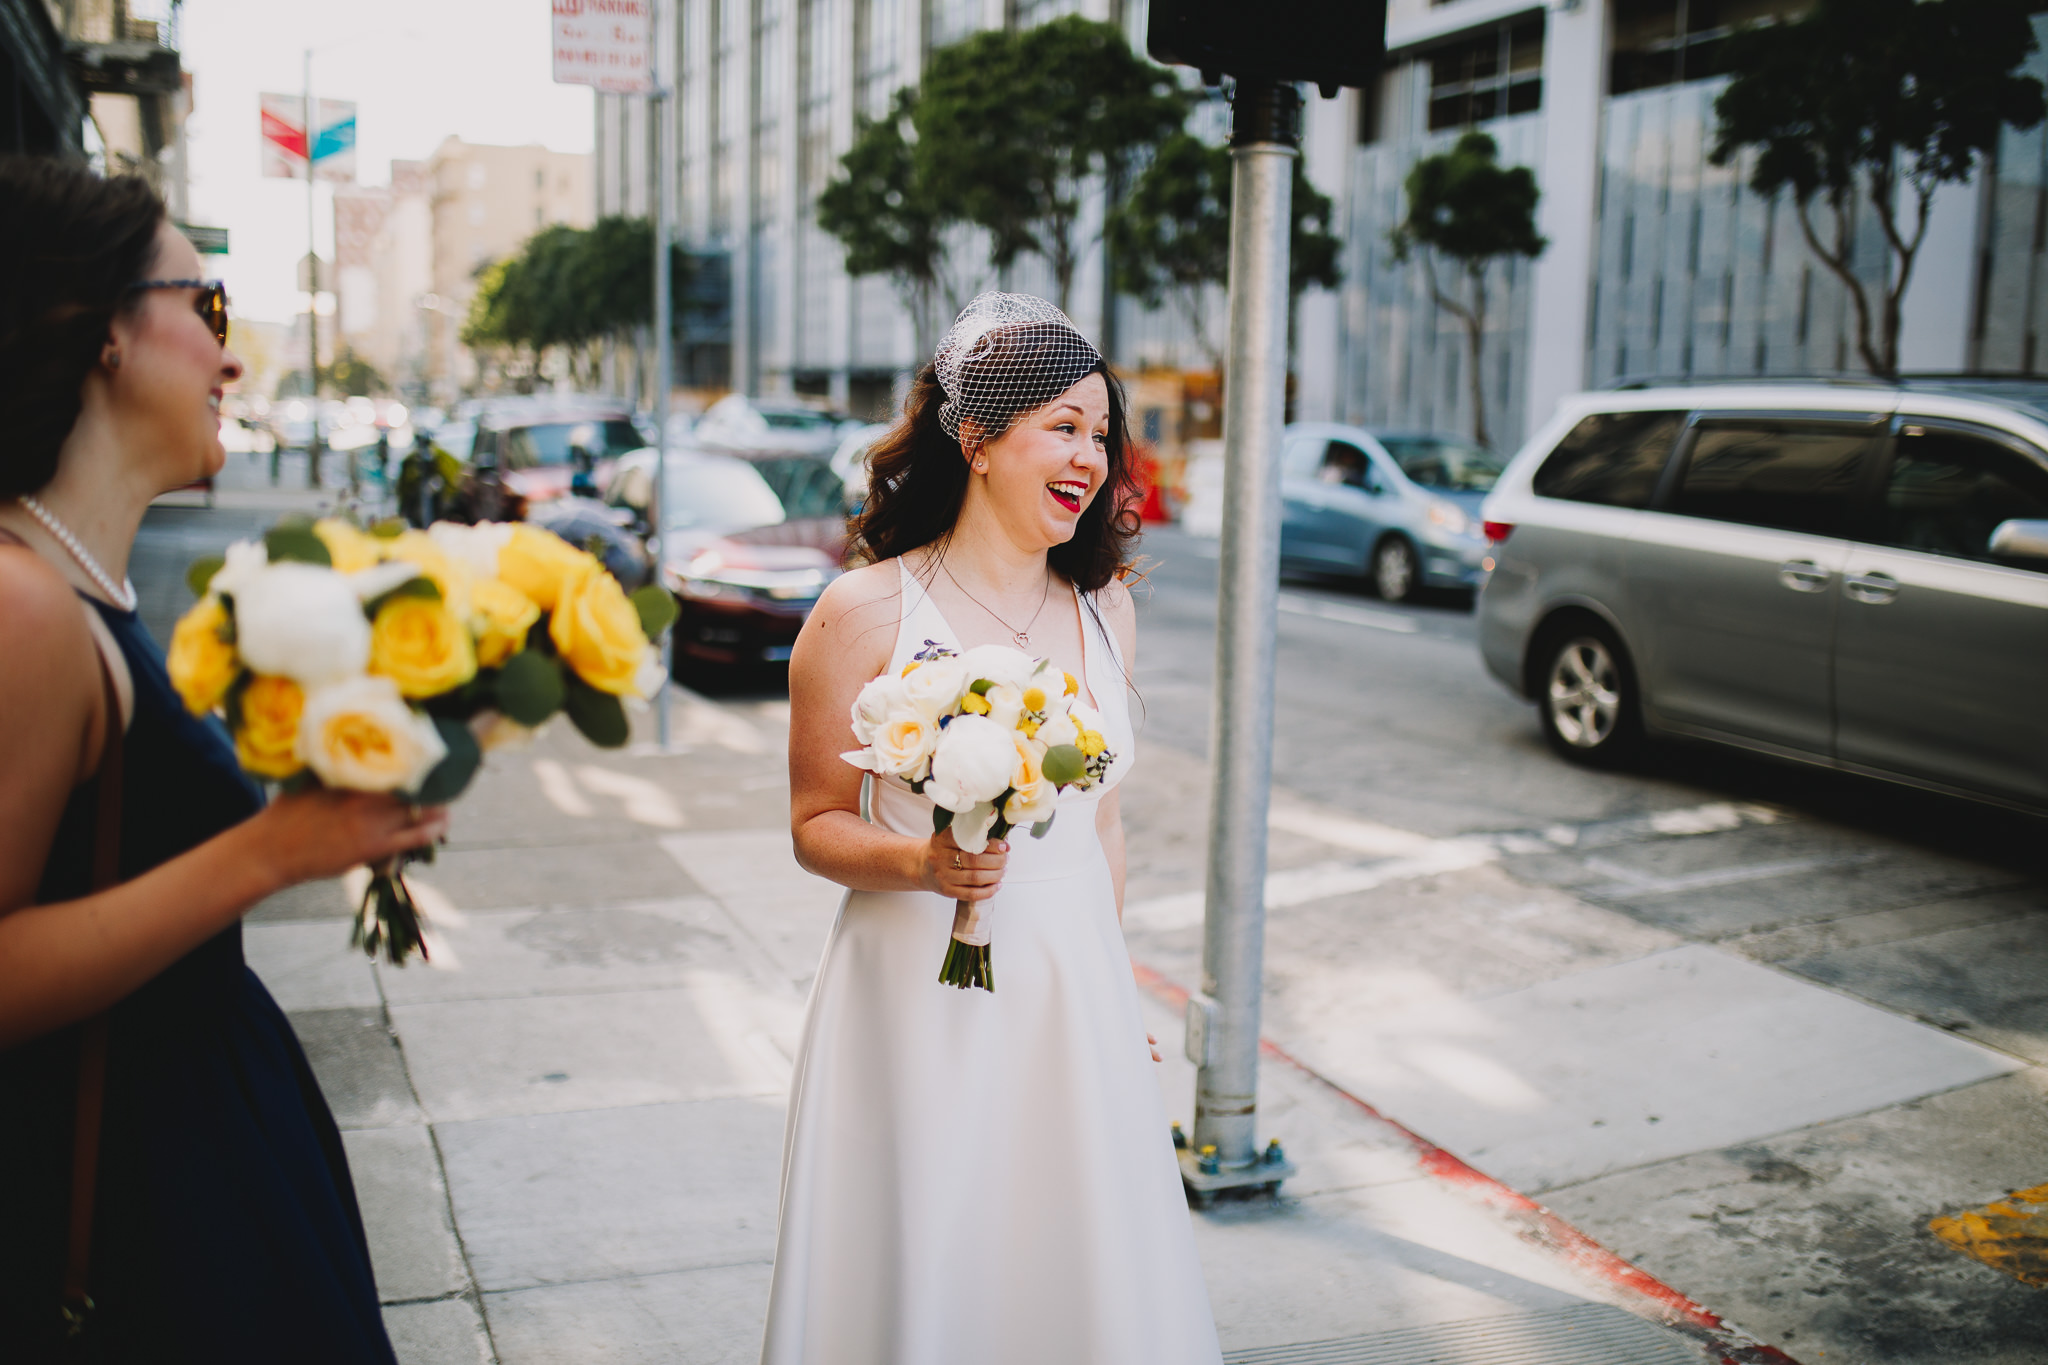 Archer Inspired Photography SF City Hall Elopement Wedding Lifestyle Documentary Affordable Photographer-25.jpg